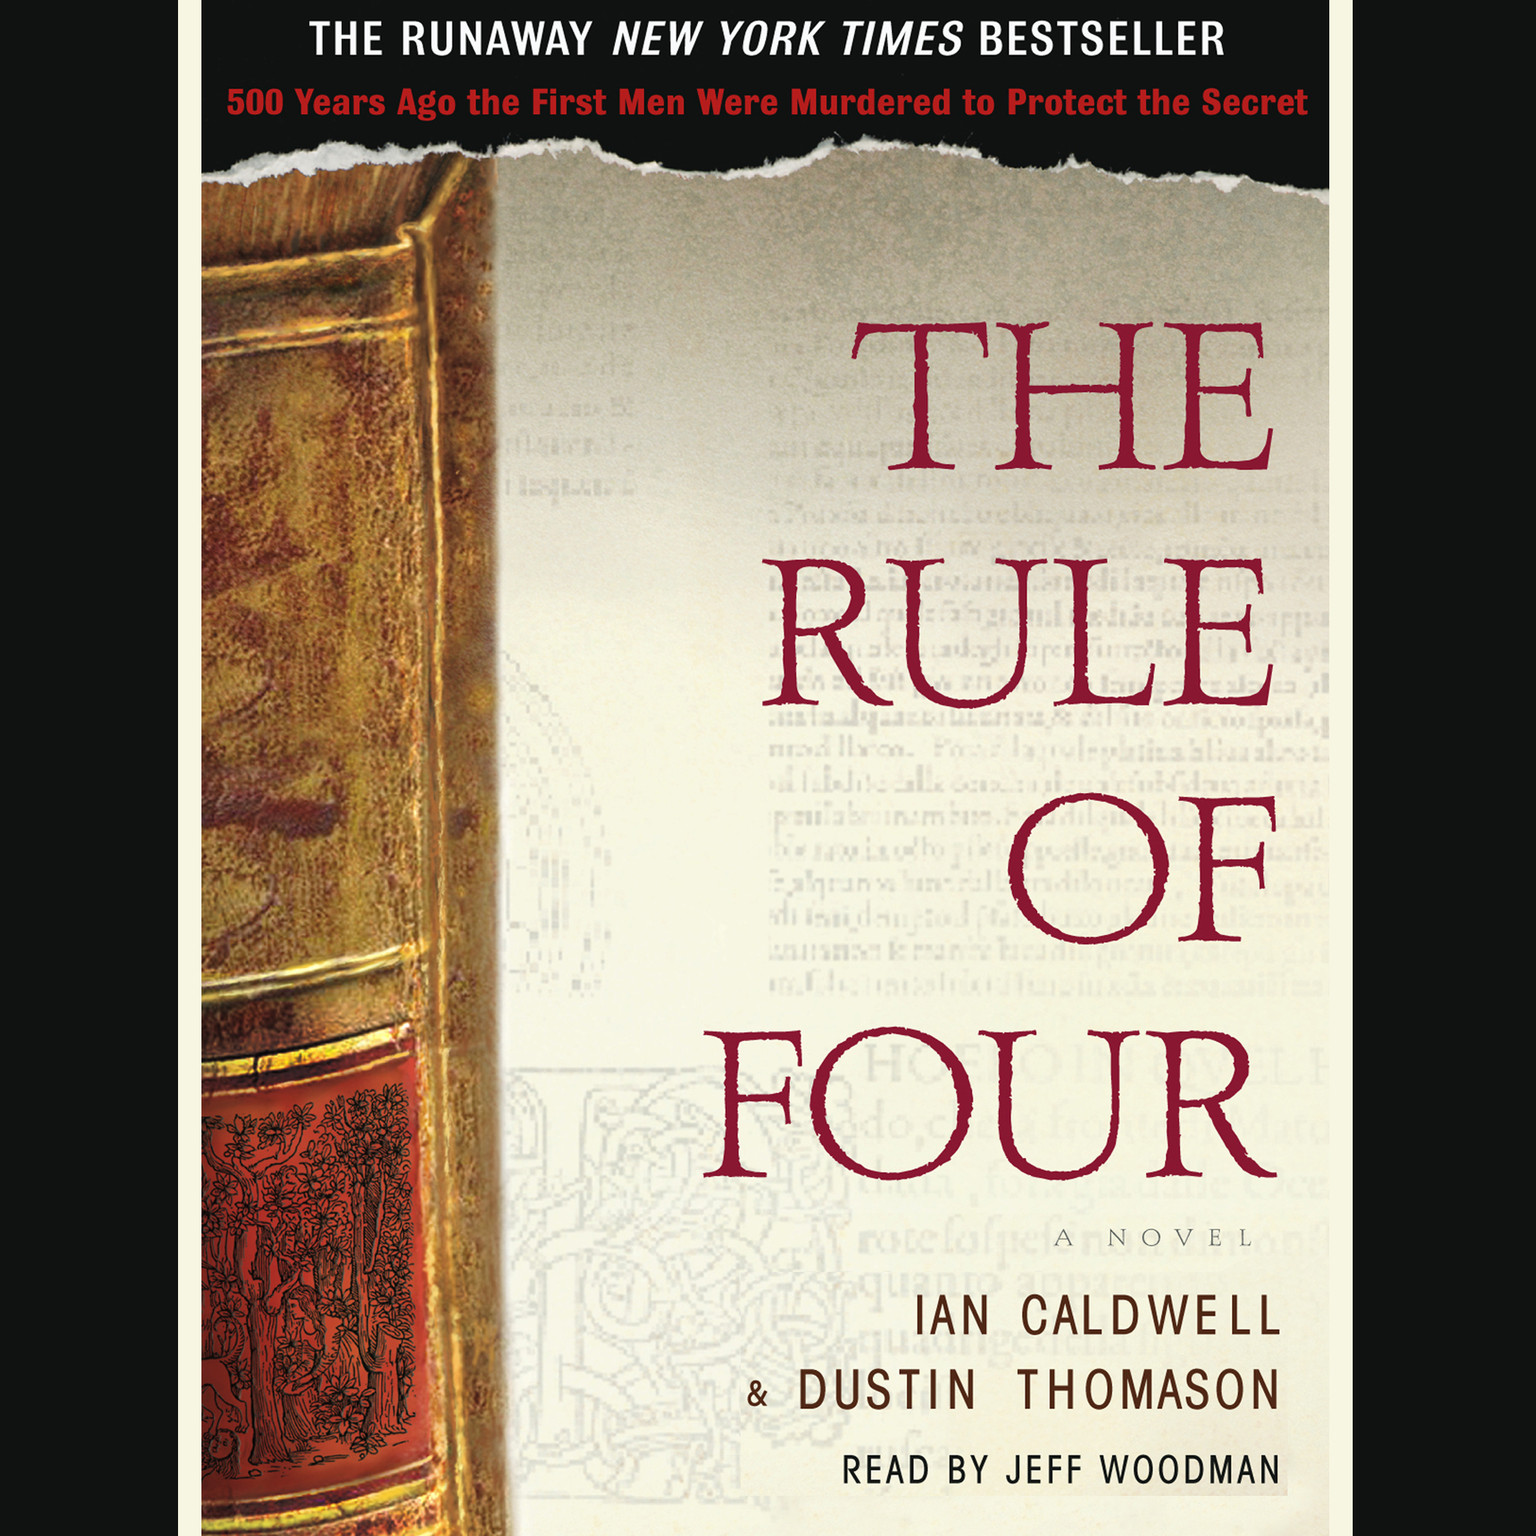 the rule of four For the legal practice, see rule of four the rule of four is a novel written by the american authors ian caldwell and dustin thomason, and published in 2004.